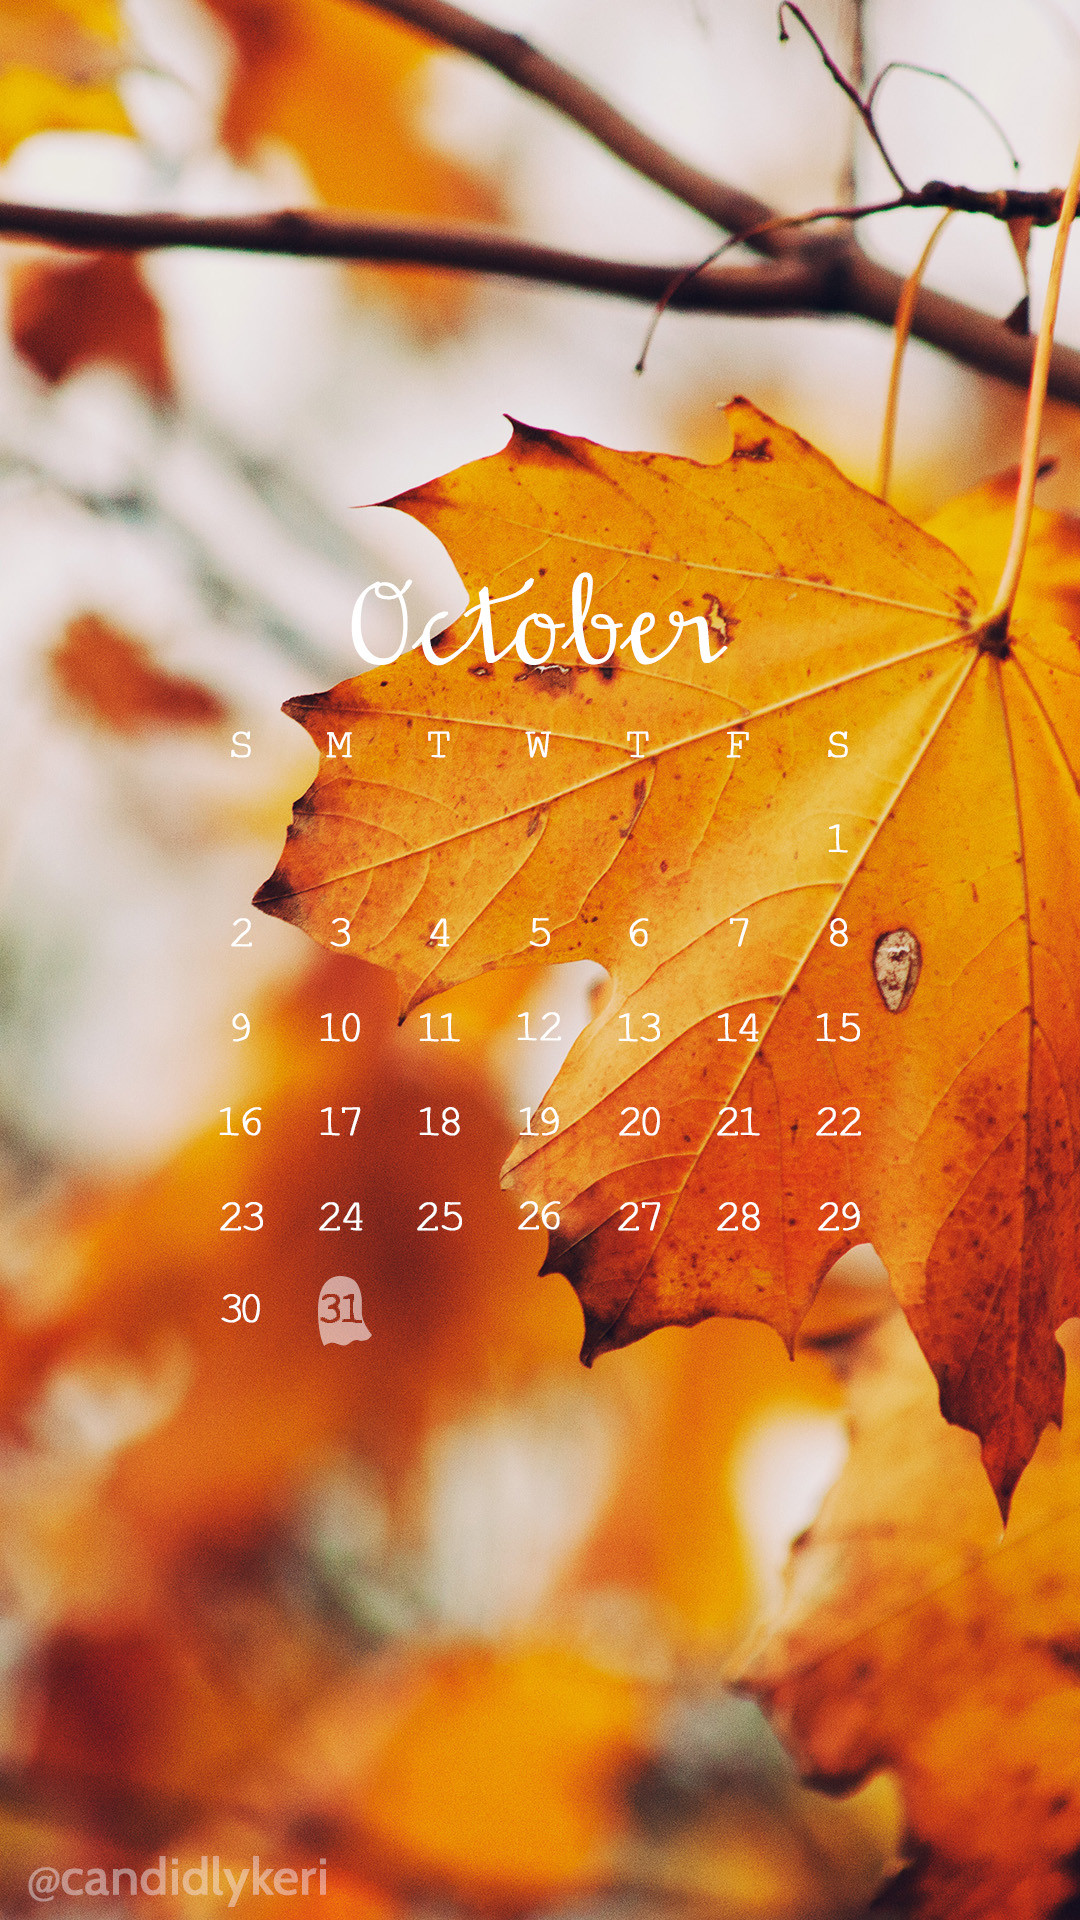 Fall leaves photo October calendar 2016 wallpaper you can download for free  on the blog!